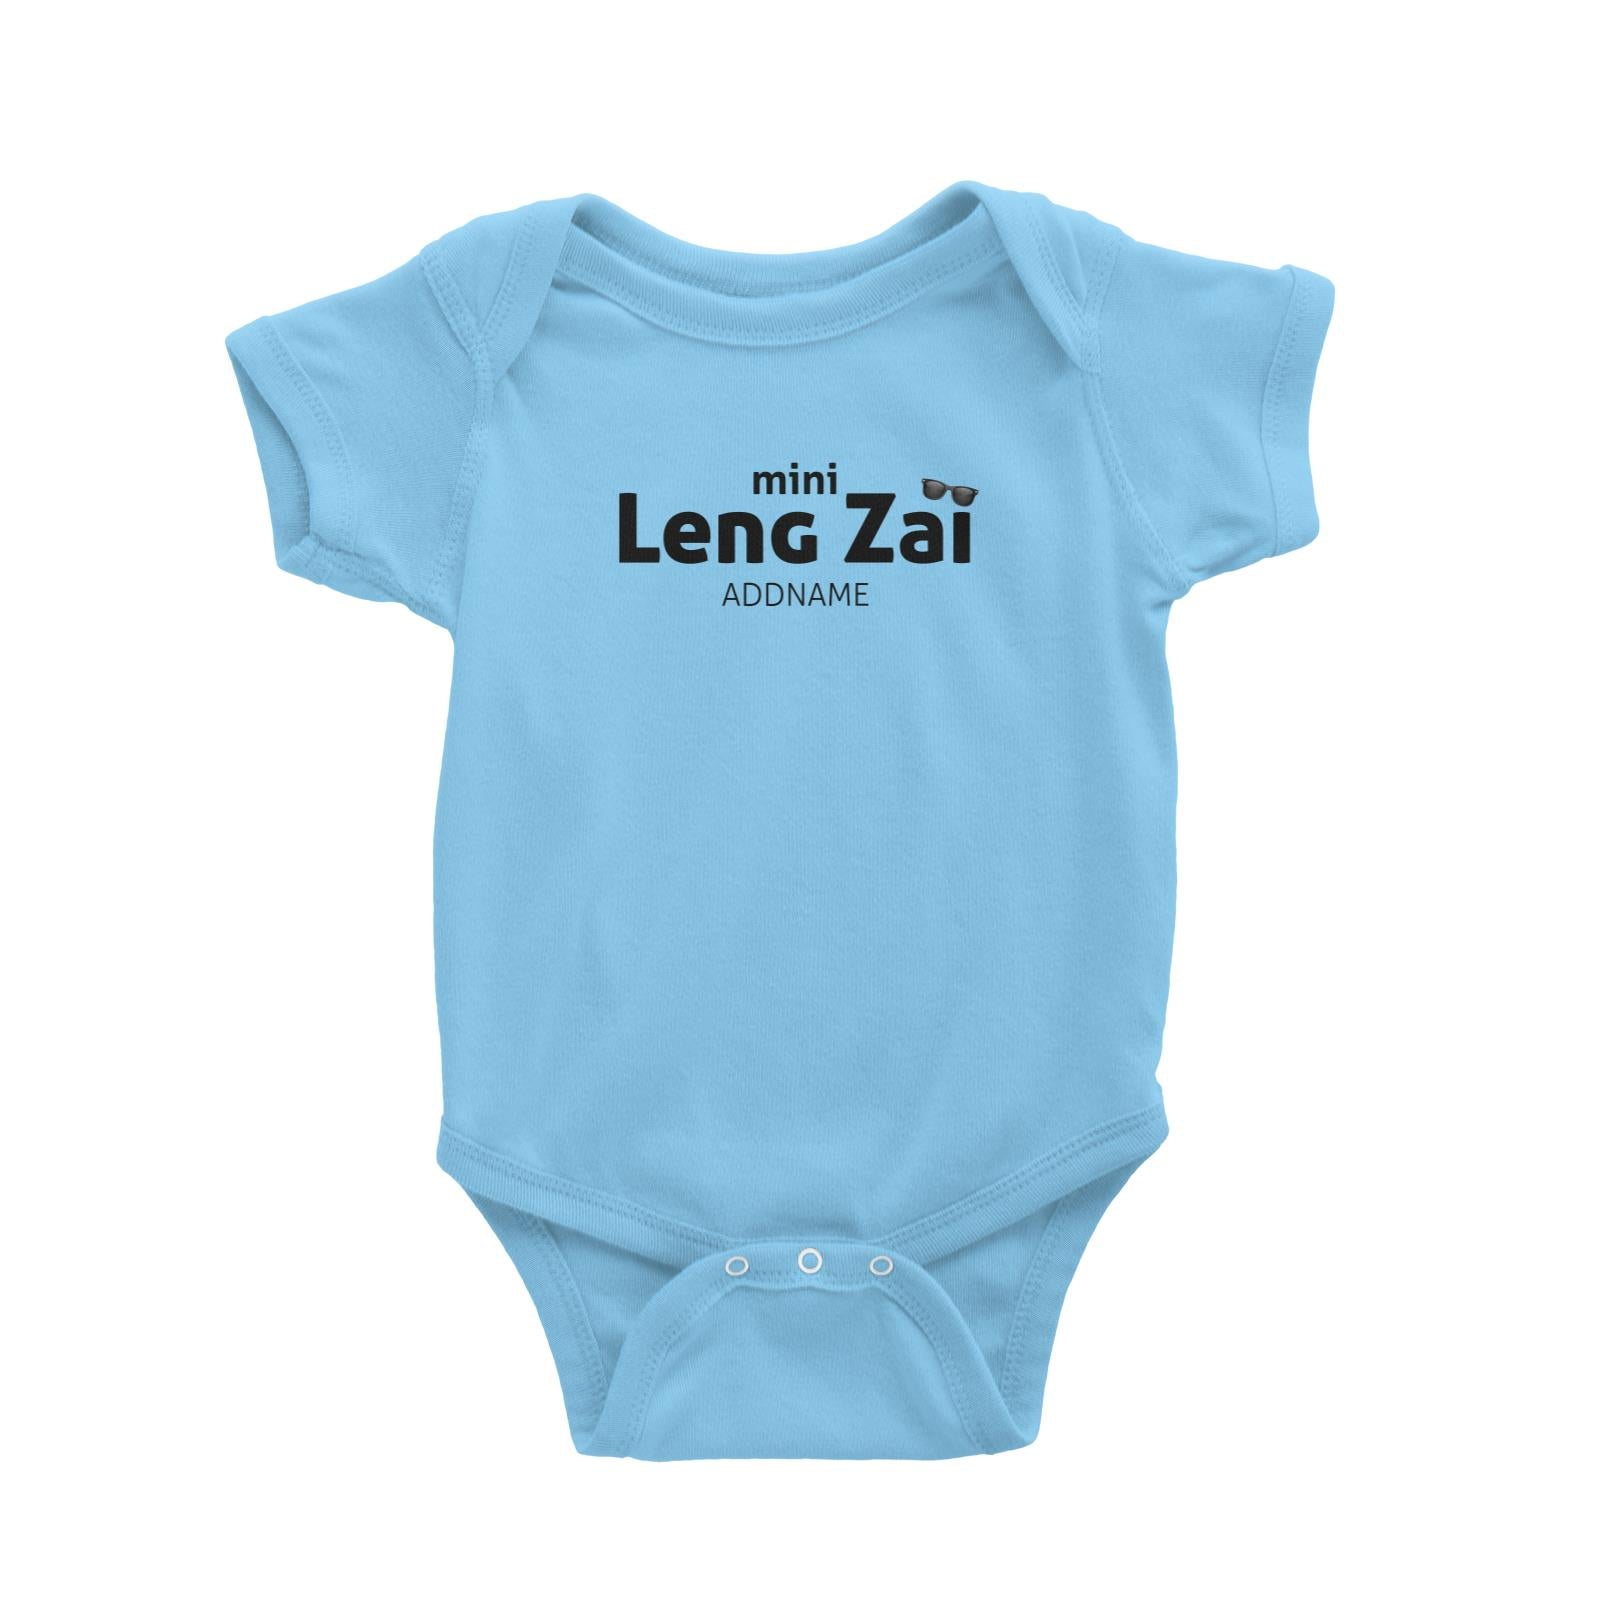 Mini Leng Zai with Sunnies Baby Romper